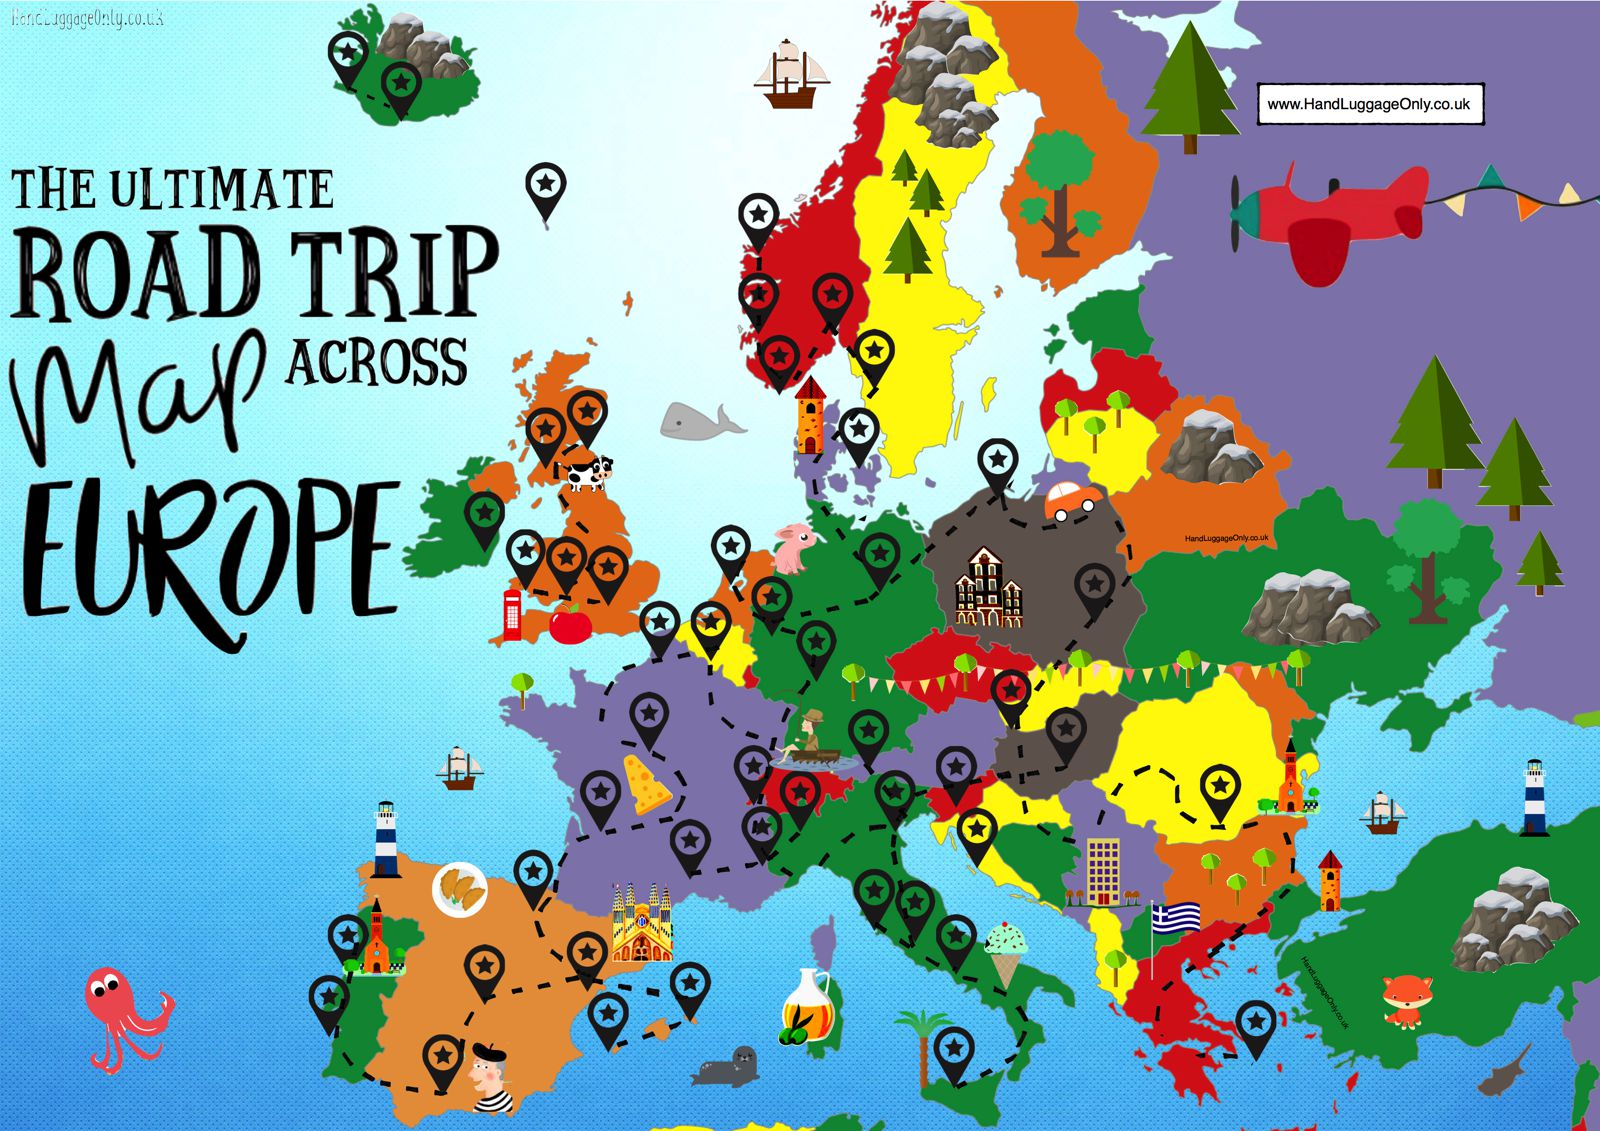 The Complete Europe Road Trip Map: 49 Places To Visit And ... on adventure map, history map, folded map, florida map, book map, nature map, rock map, love map, vacation map, science map, cats map, friendship map, us highway map, restaurant map, world map, go map, technology map, random map, black map, vintage map,